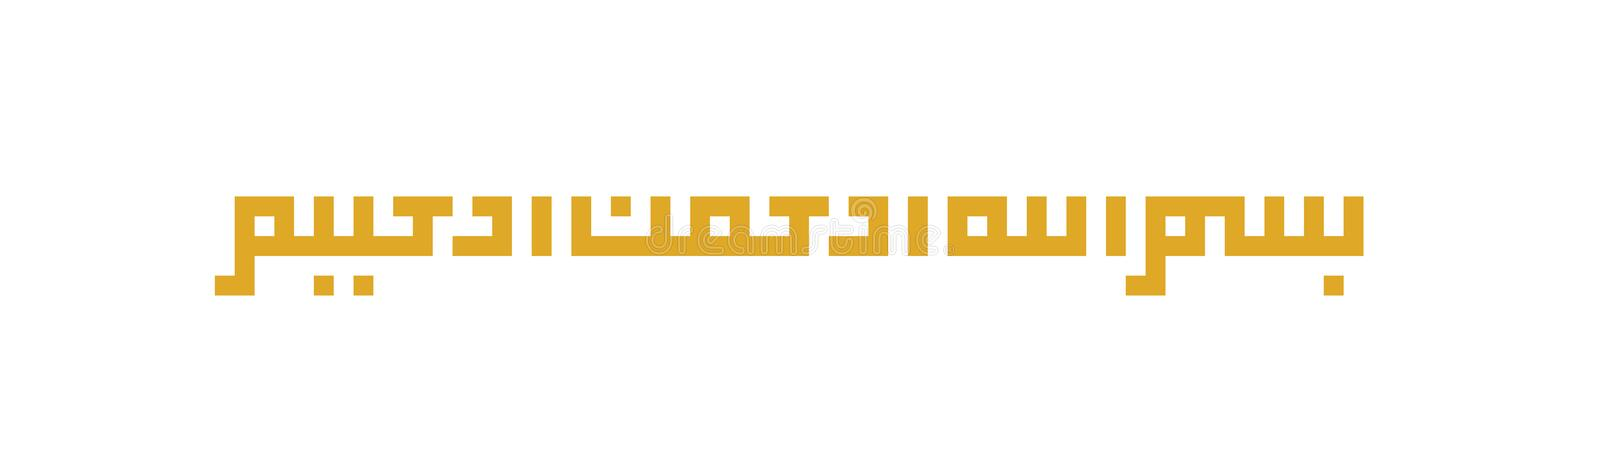 Basmallah or Bismillah, In The Name of God, Arabic Kufic Style, Islamic Calligraphy Illustration vector illustration